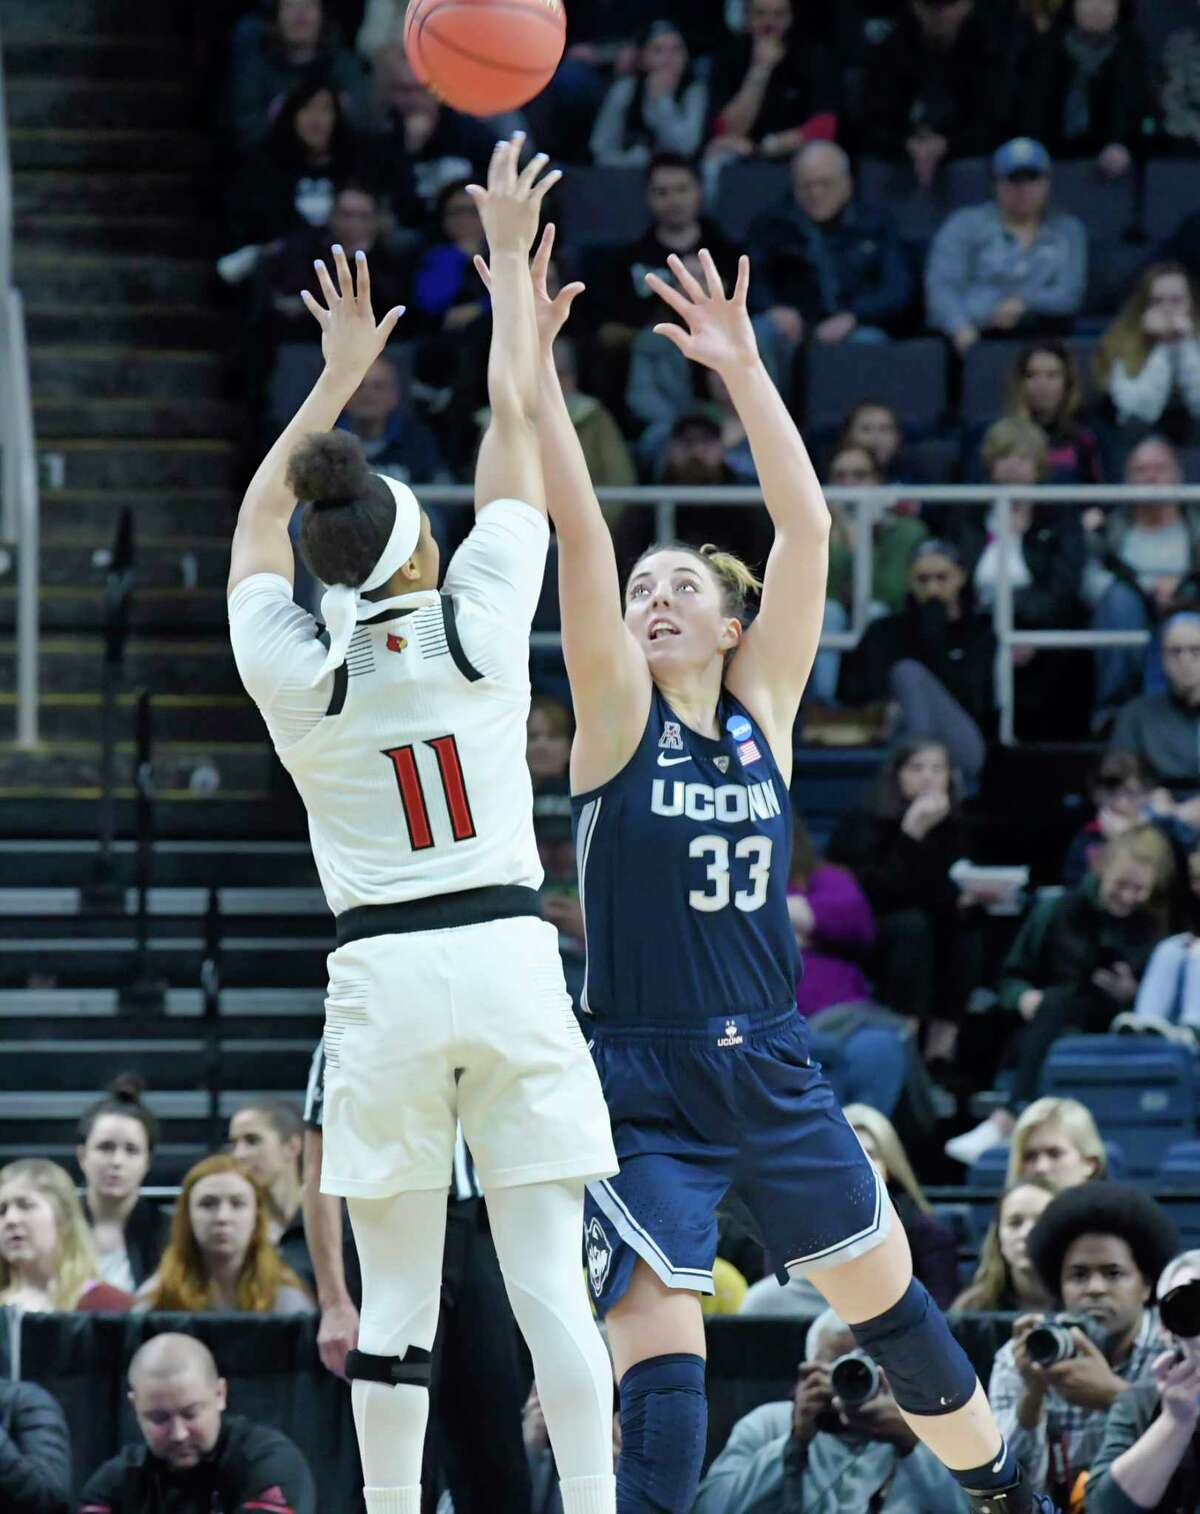 Arica Carter, left, of Louisville, puts up a shot over Katie Lou Samuelson of UConn during the final of the Albany Regional NCAA Women's Basketball Championship on Sunday, March 31, 2019, in Albany, N.Y. (Paul Buckowski/Times Union)